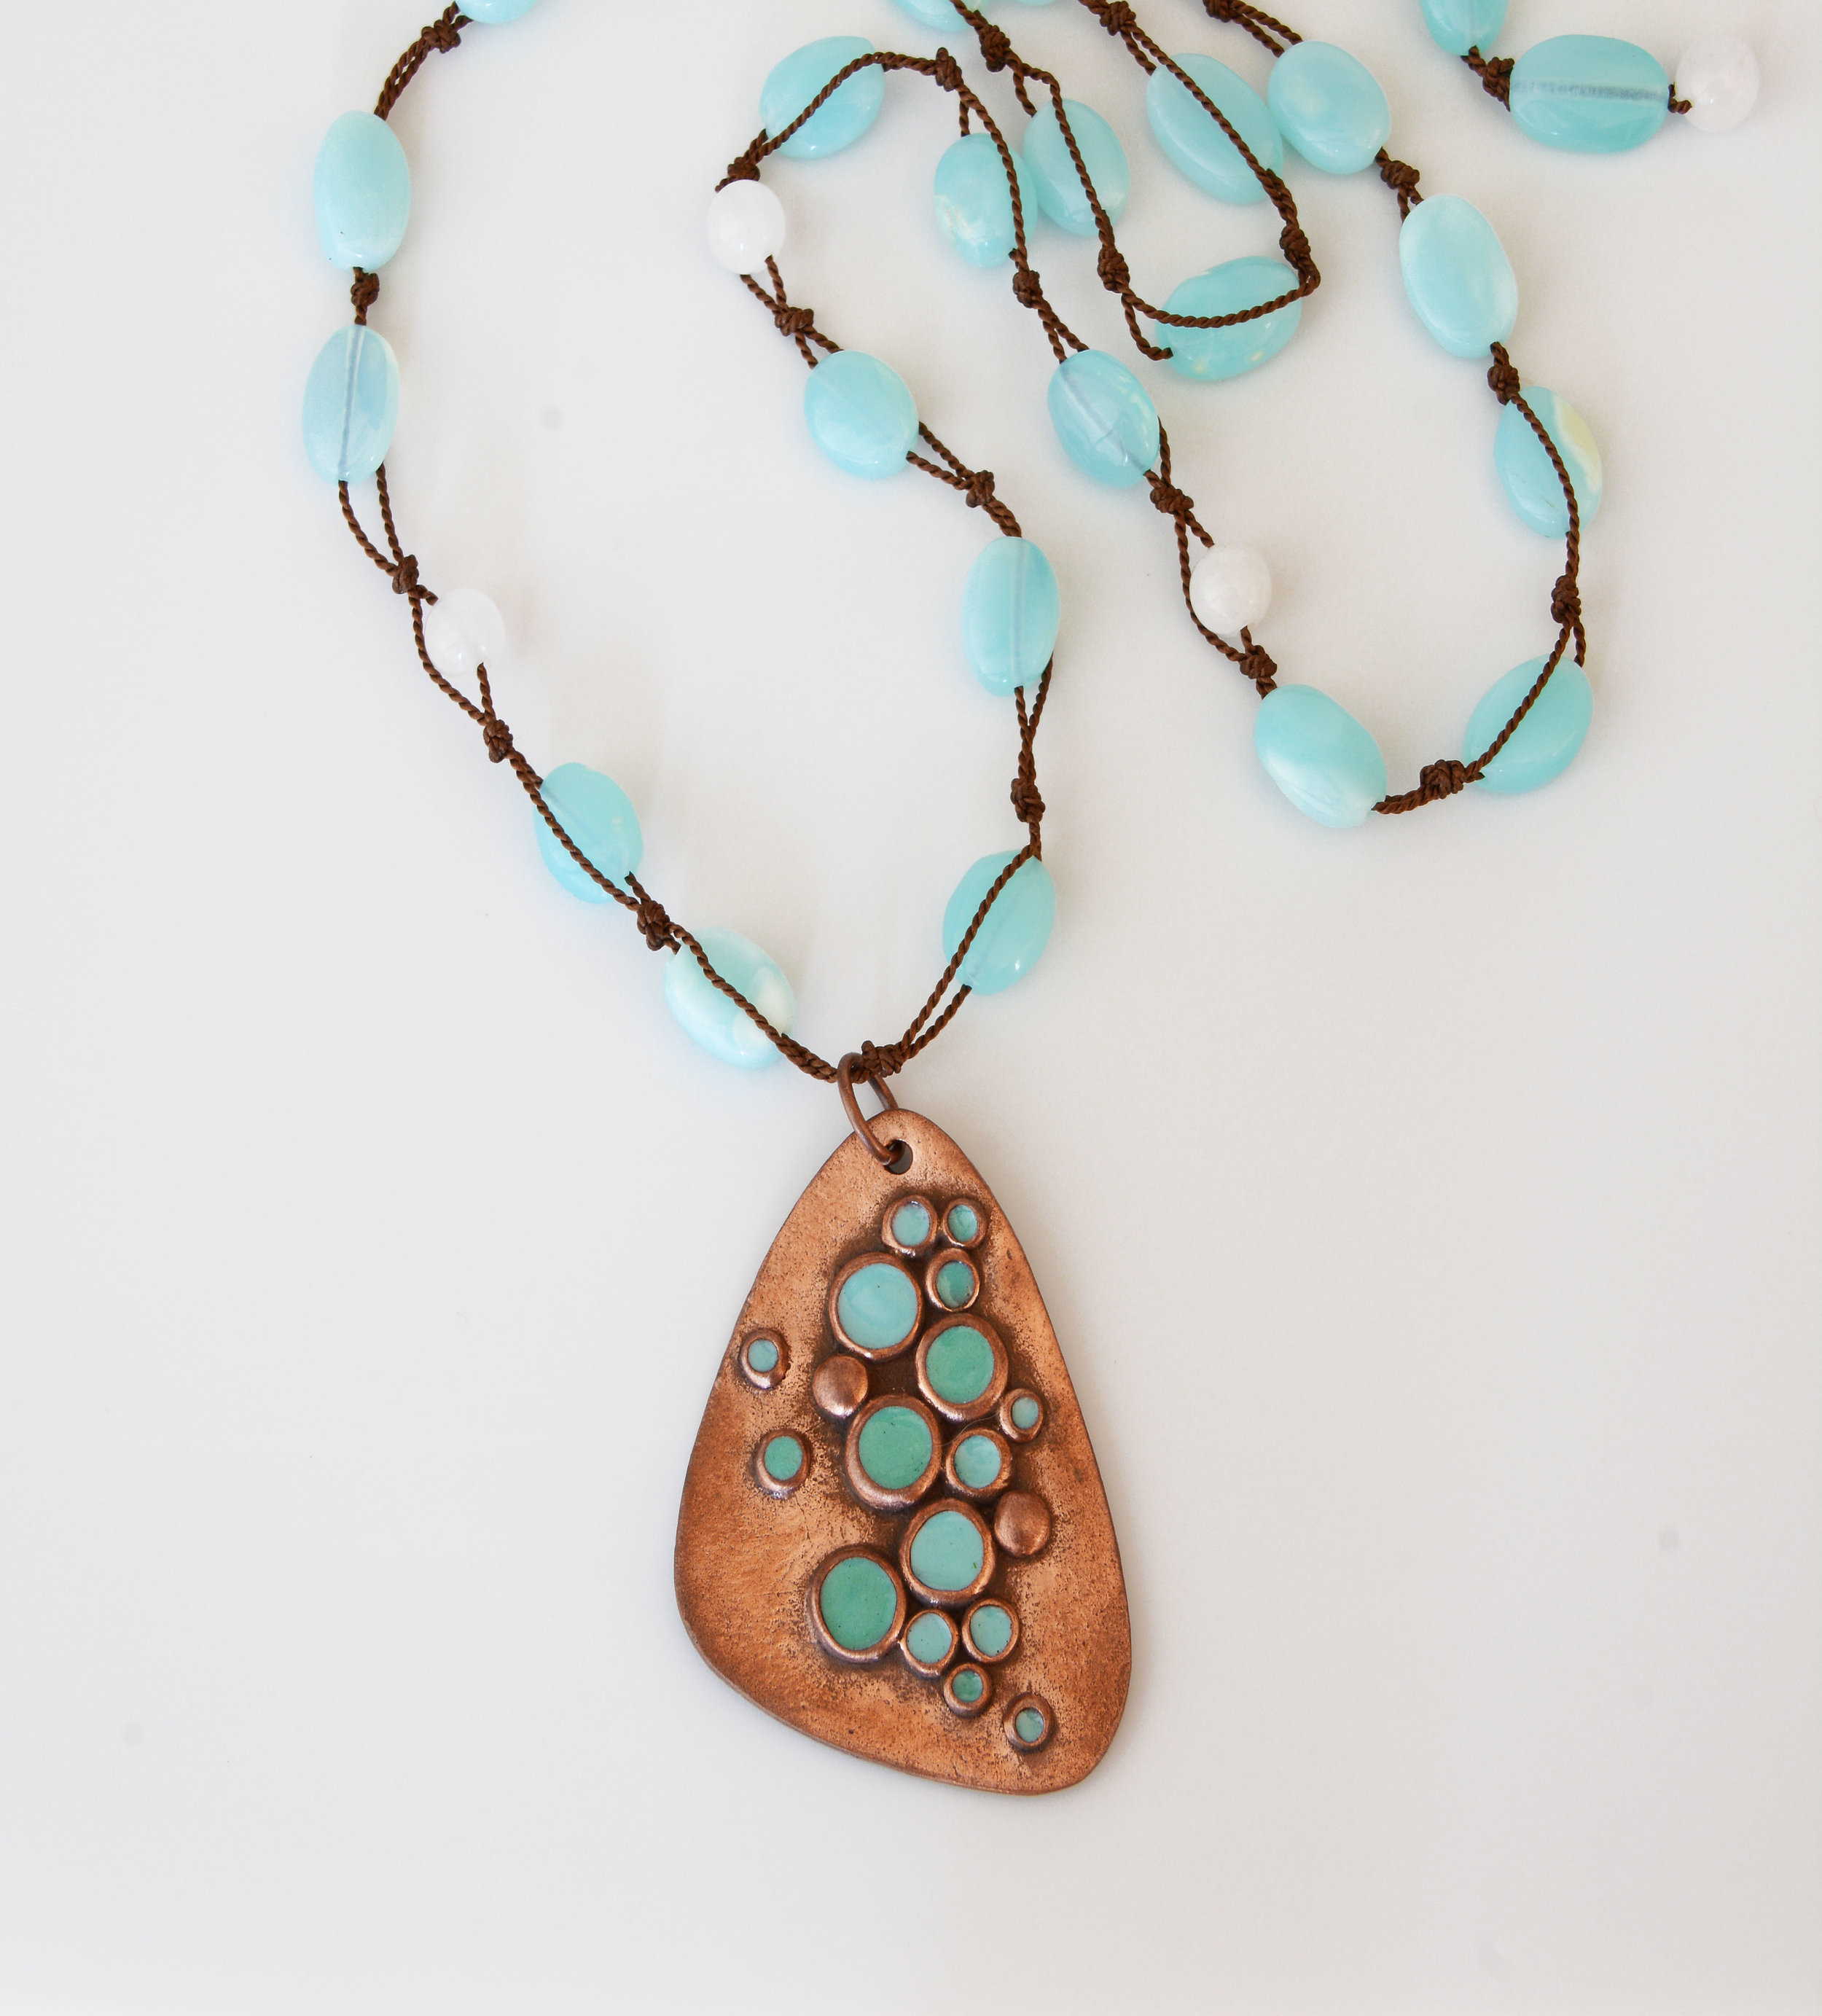 michelle-hoting-turquoise-bubbles-necklace-web.jpg